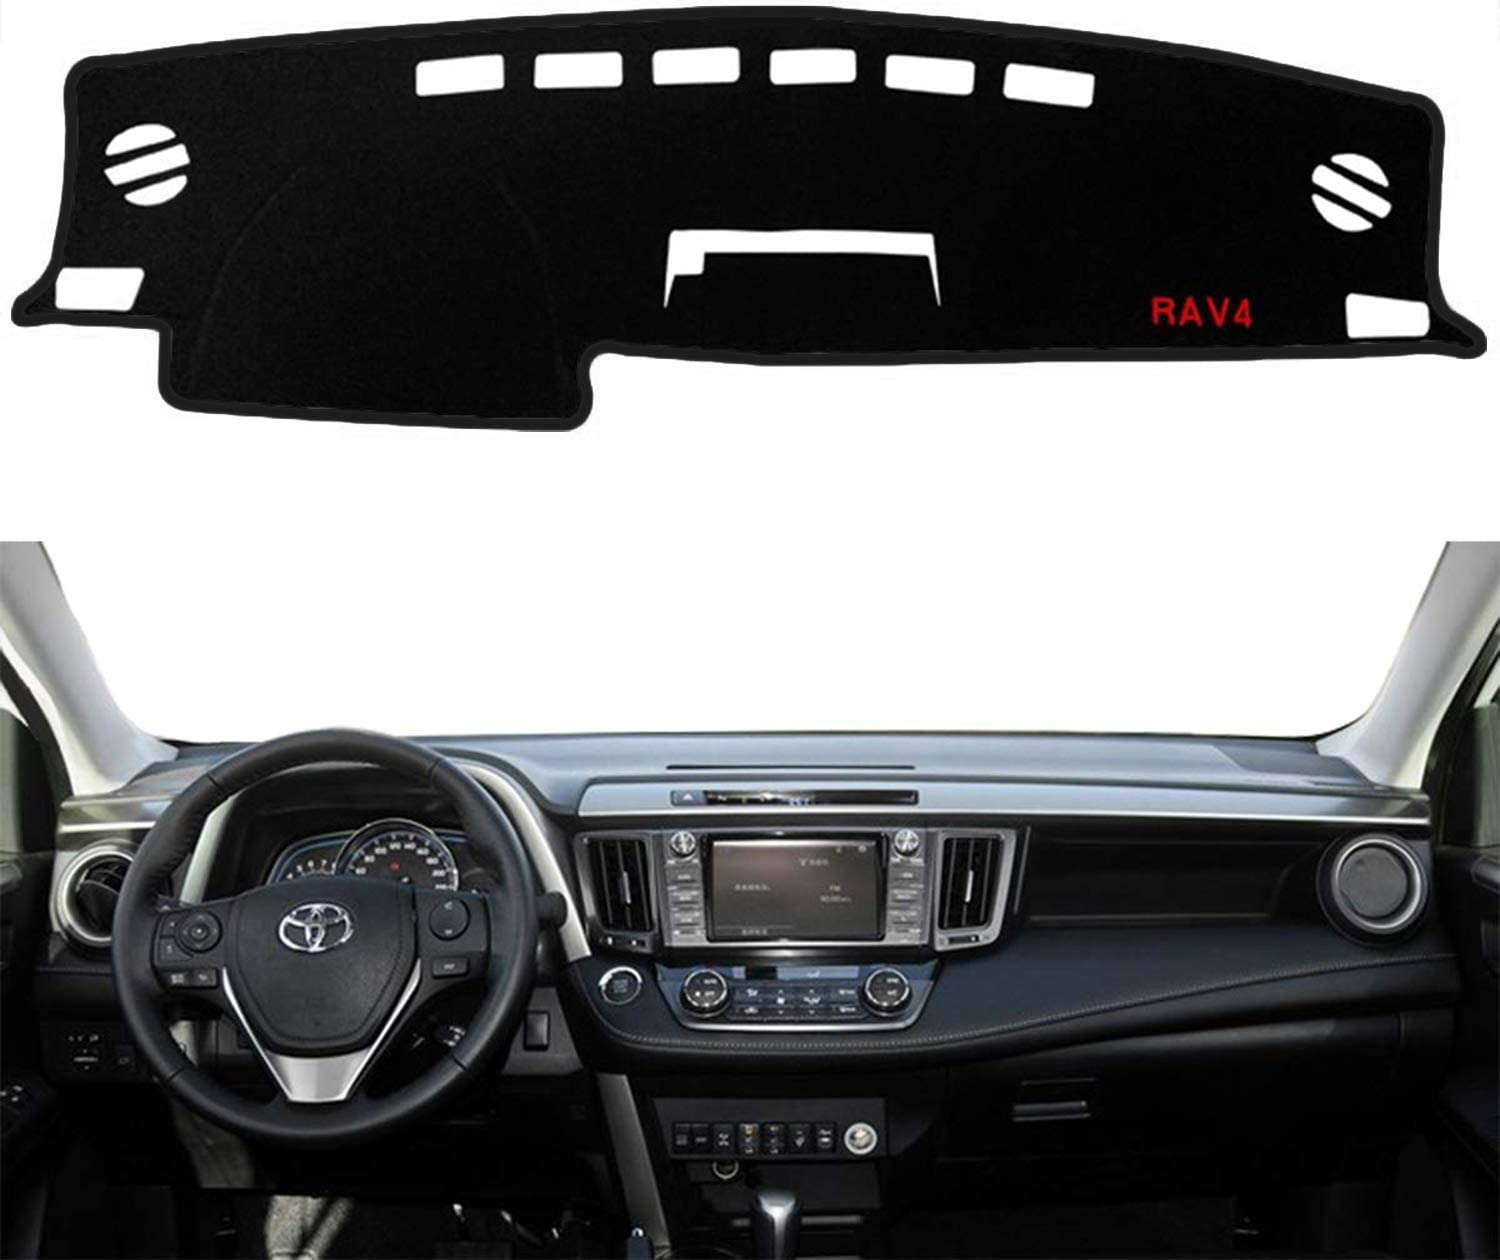 Yeeoy Custom Dashboard Dash Protector Dash Mat Sun Cover Pad Replacement for 2014-2018 RAV4